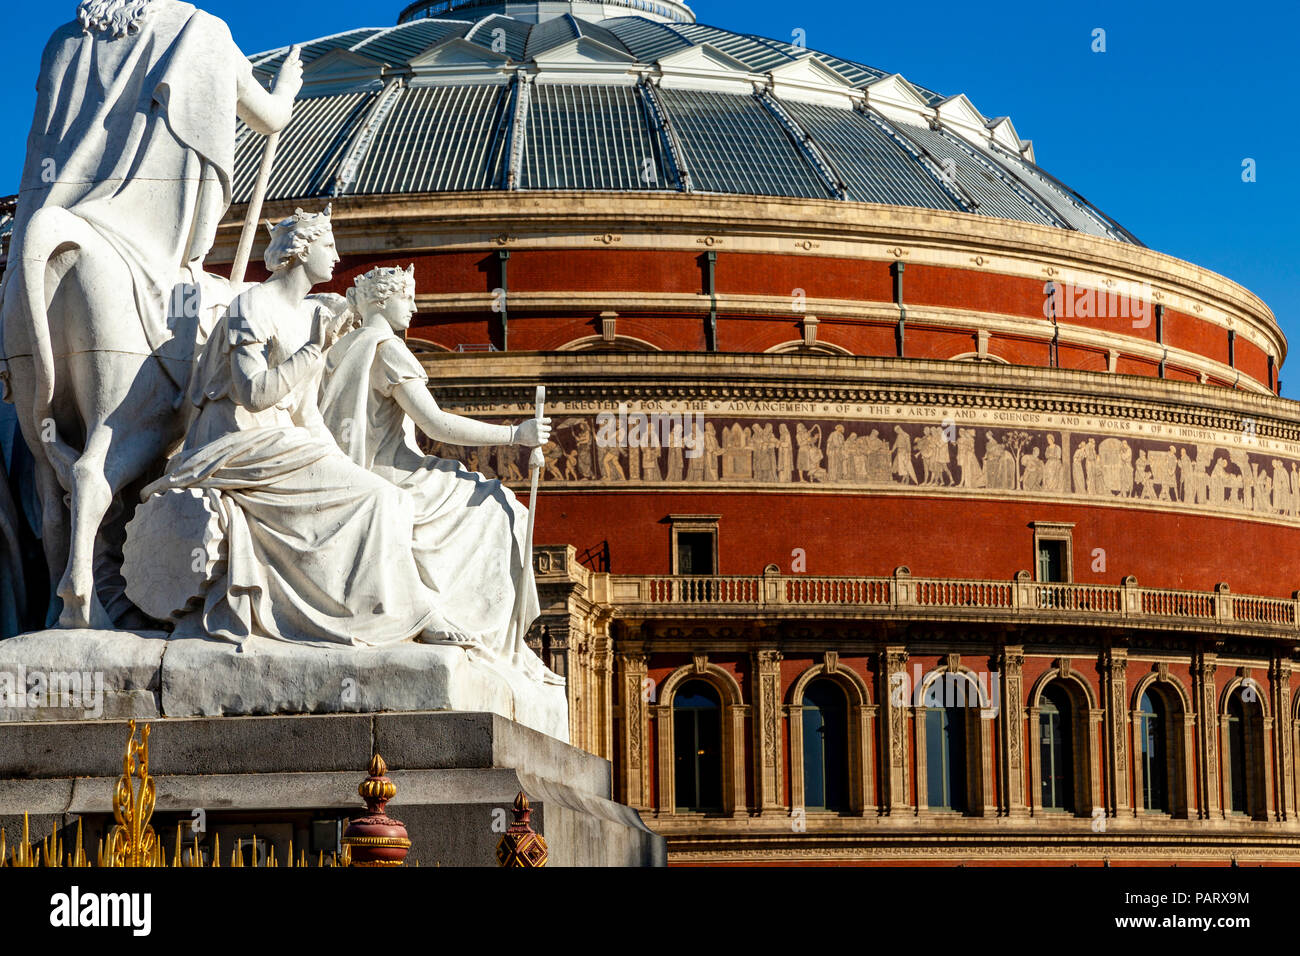 L'Albert Memorial Statue et Royal Albert Hall, Kensington Gardens, London, UK Photo Stock